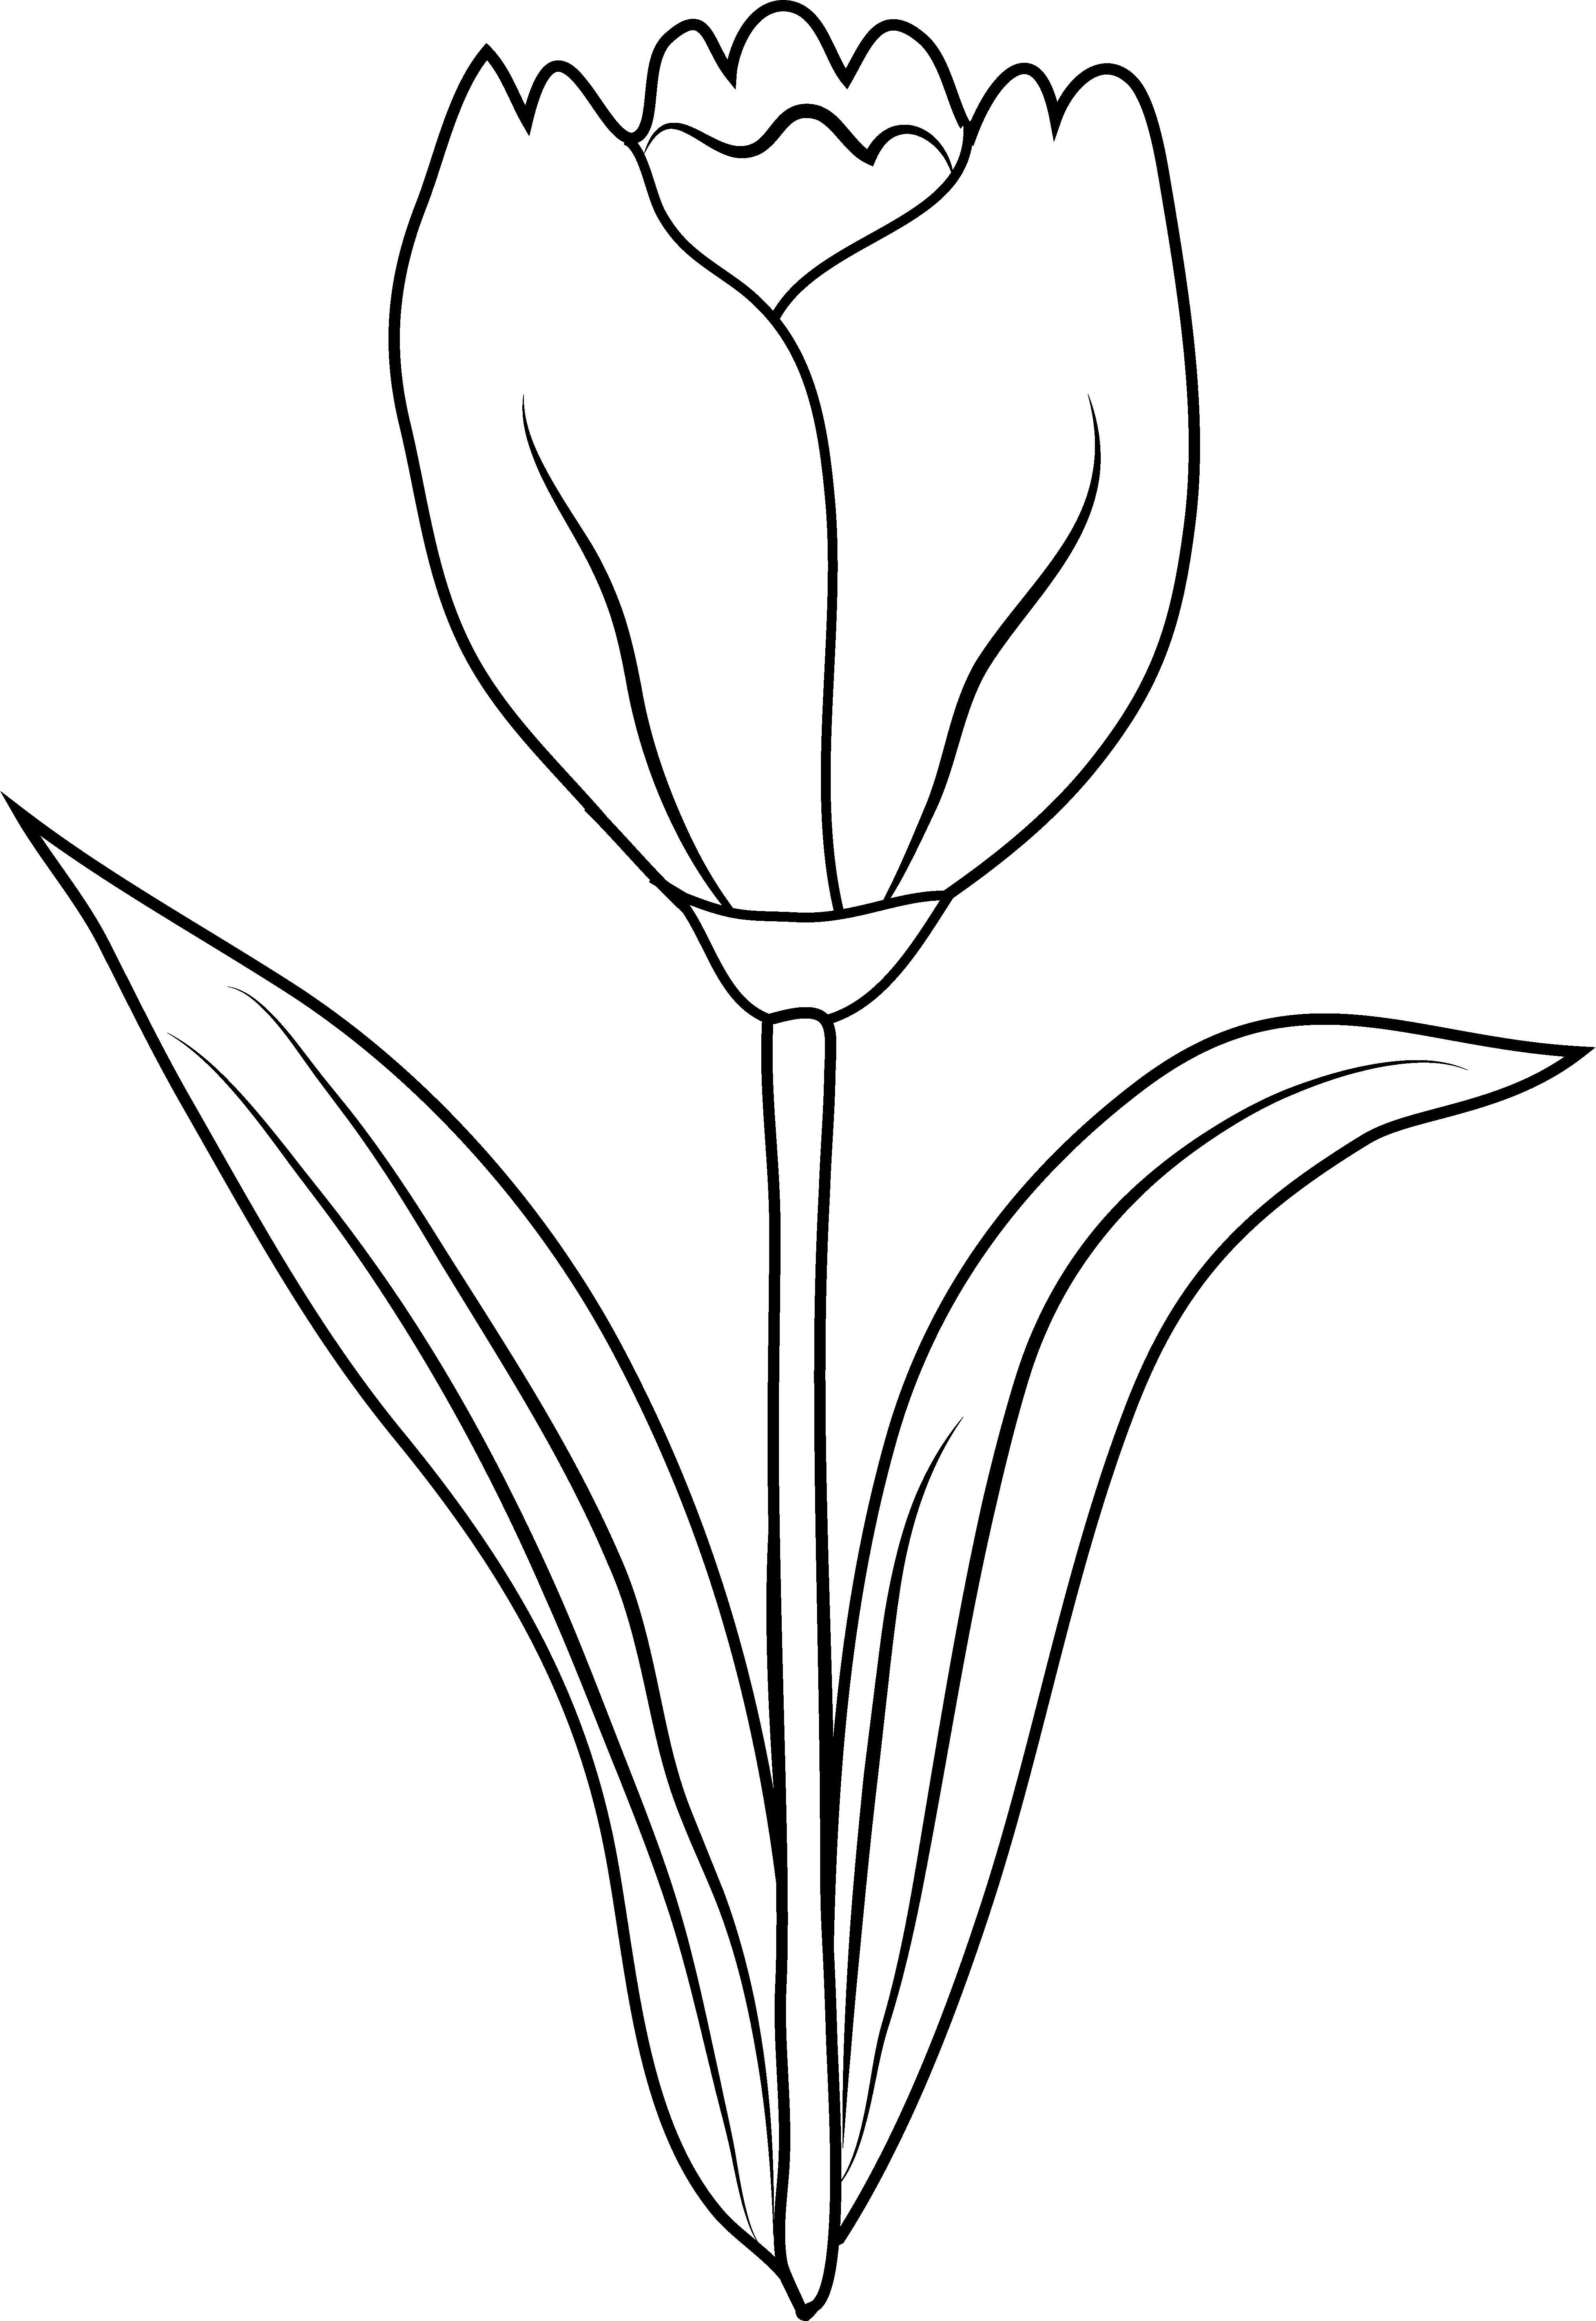 Tulip Flower Coloring Page - Free Clip Art